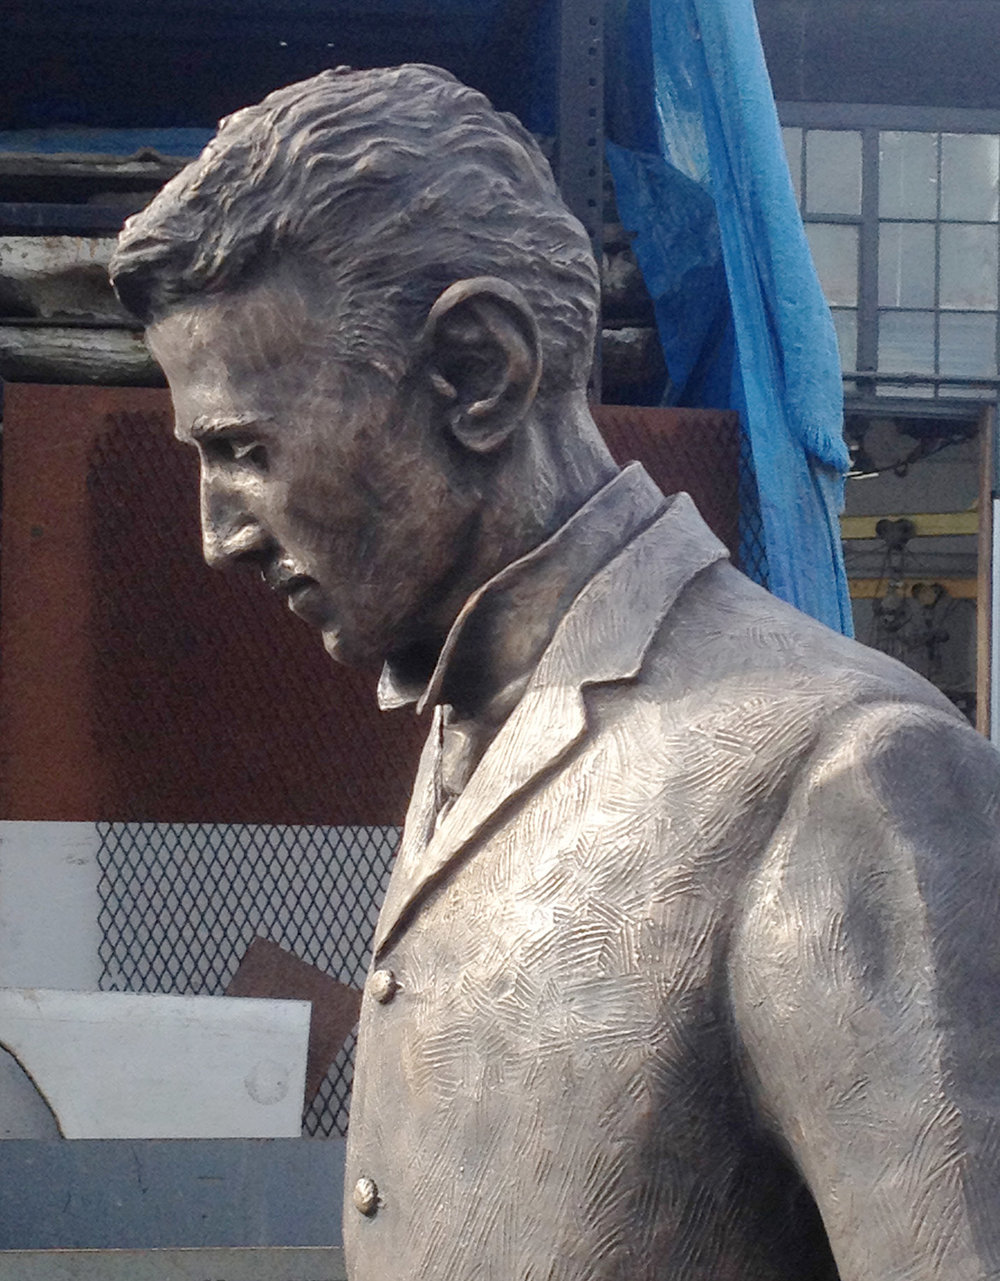 Detail of of the Nikola Tesla statue head and shoulders during patina process at Artworks Foundry in Berkeley California.